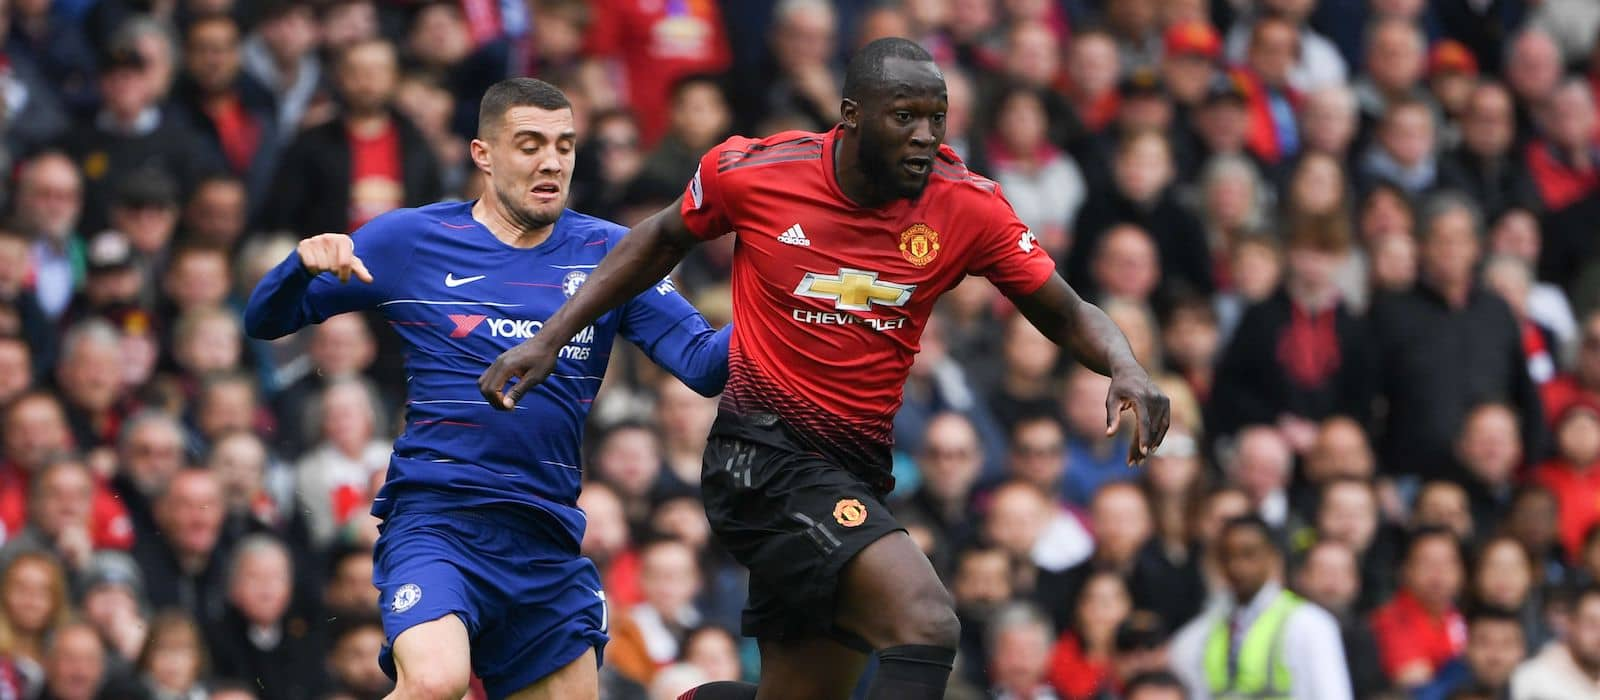 Romelu Lukaku's agent confirms Inter Milan interest amid speculation